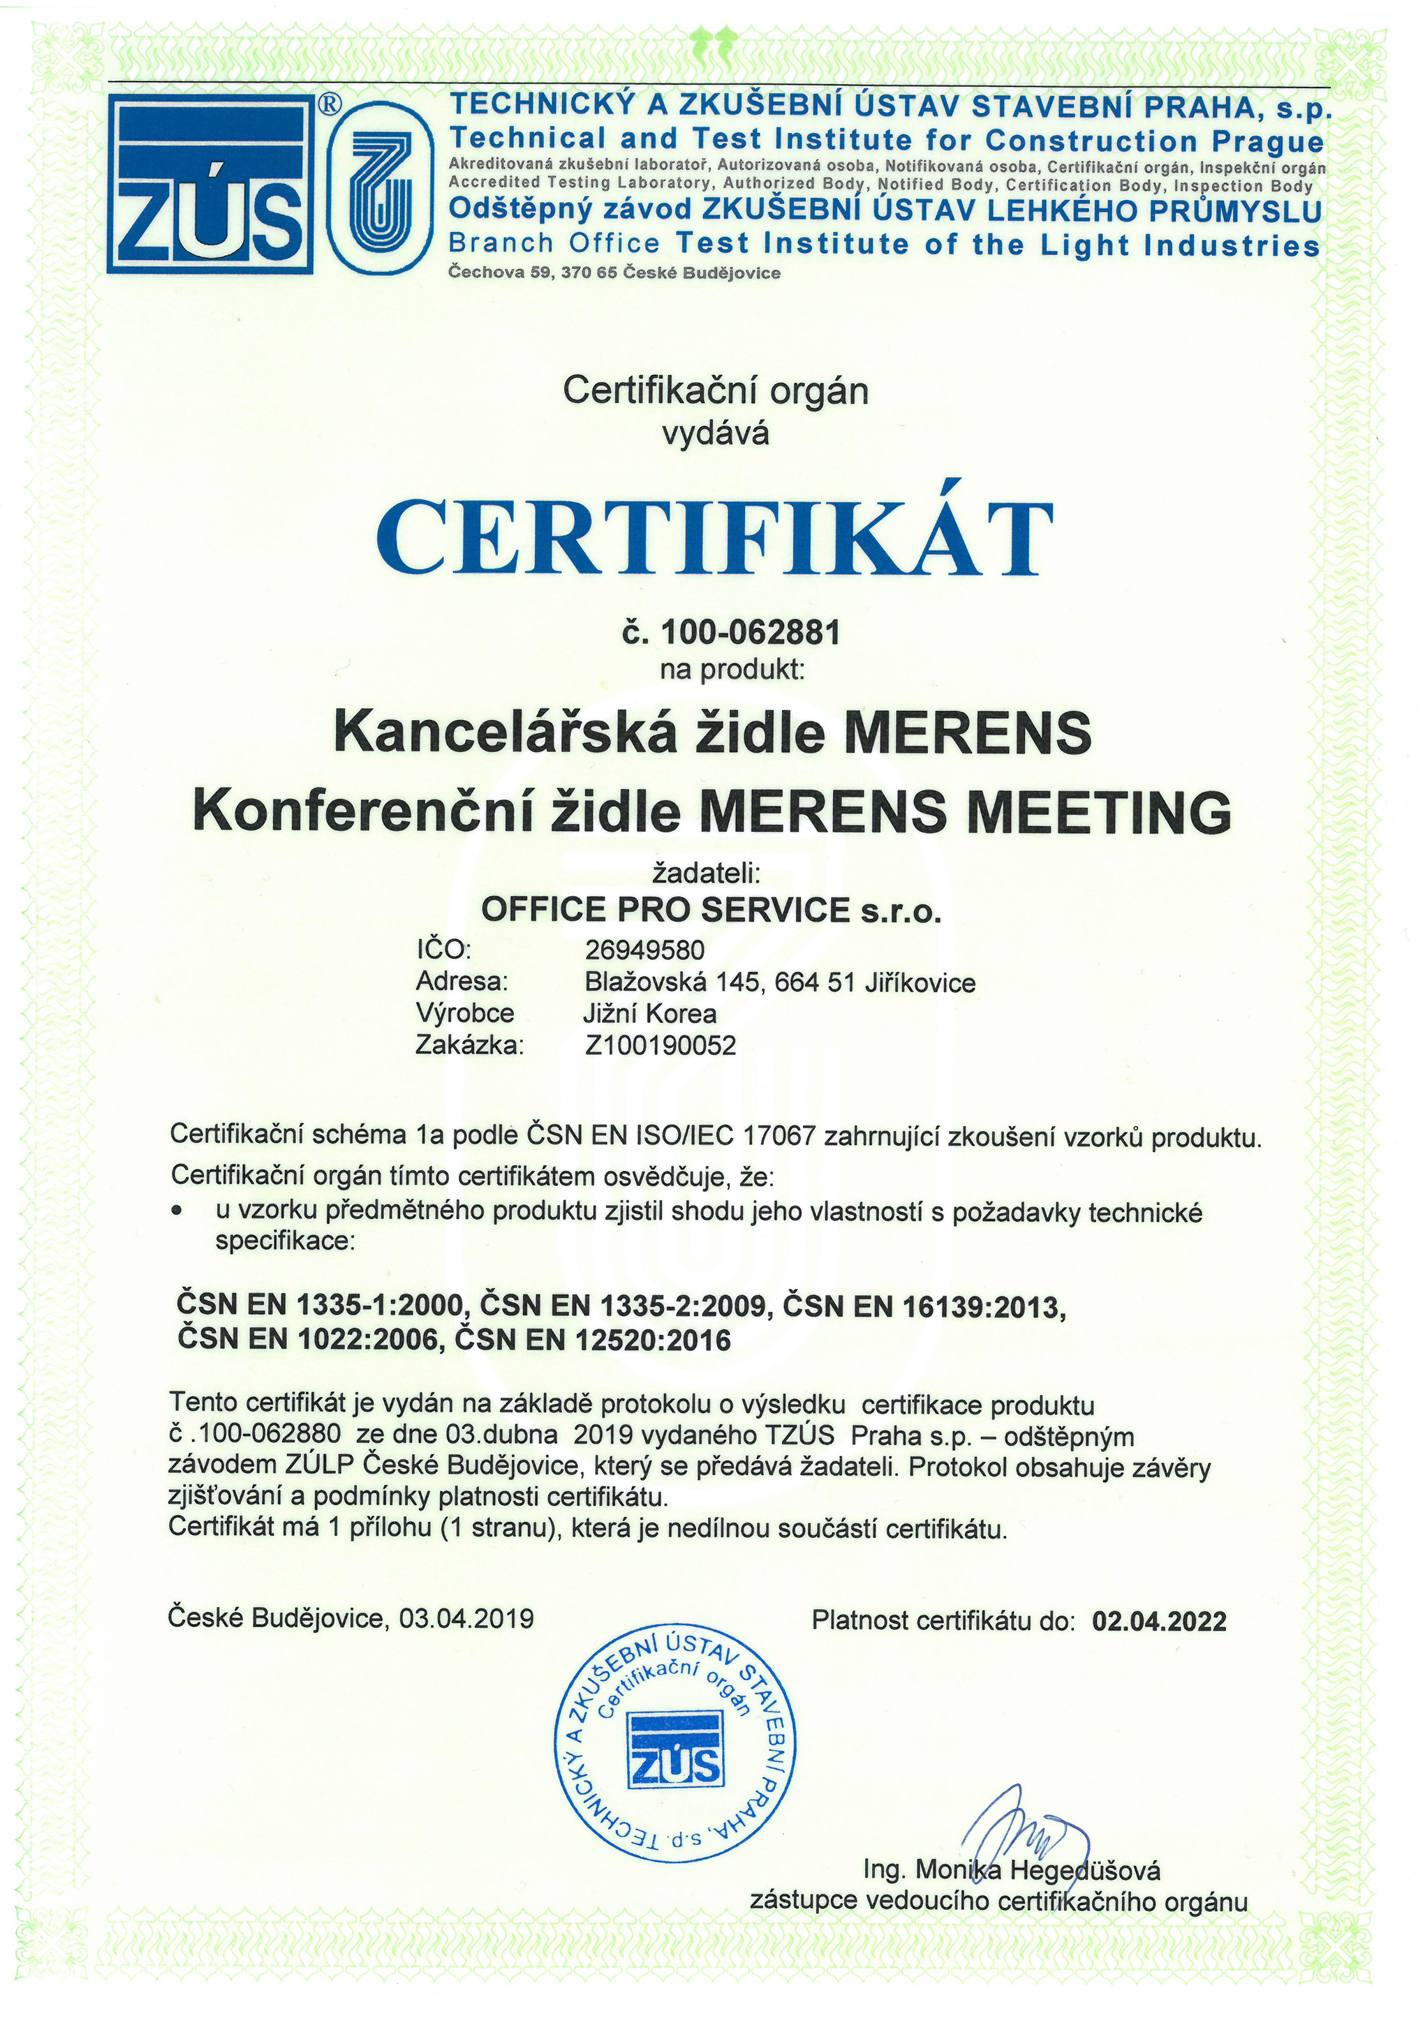 http://www.officepro.cz/data/files/certifikat_merens_do_2022.jpg